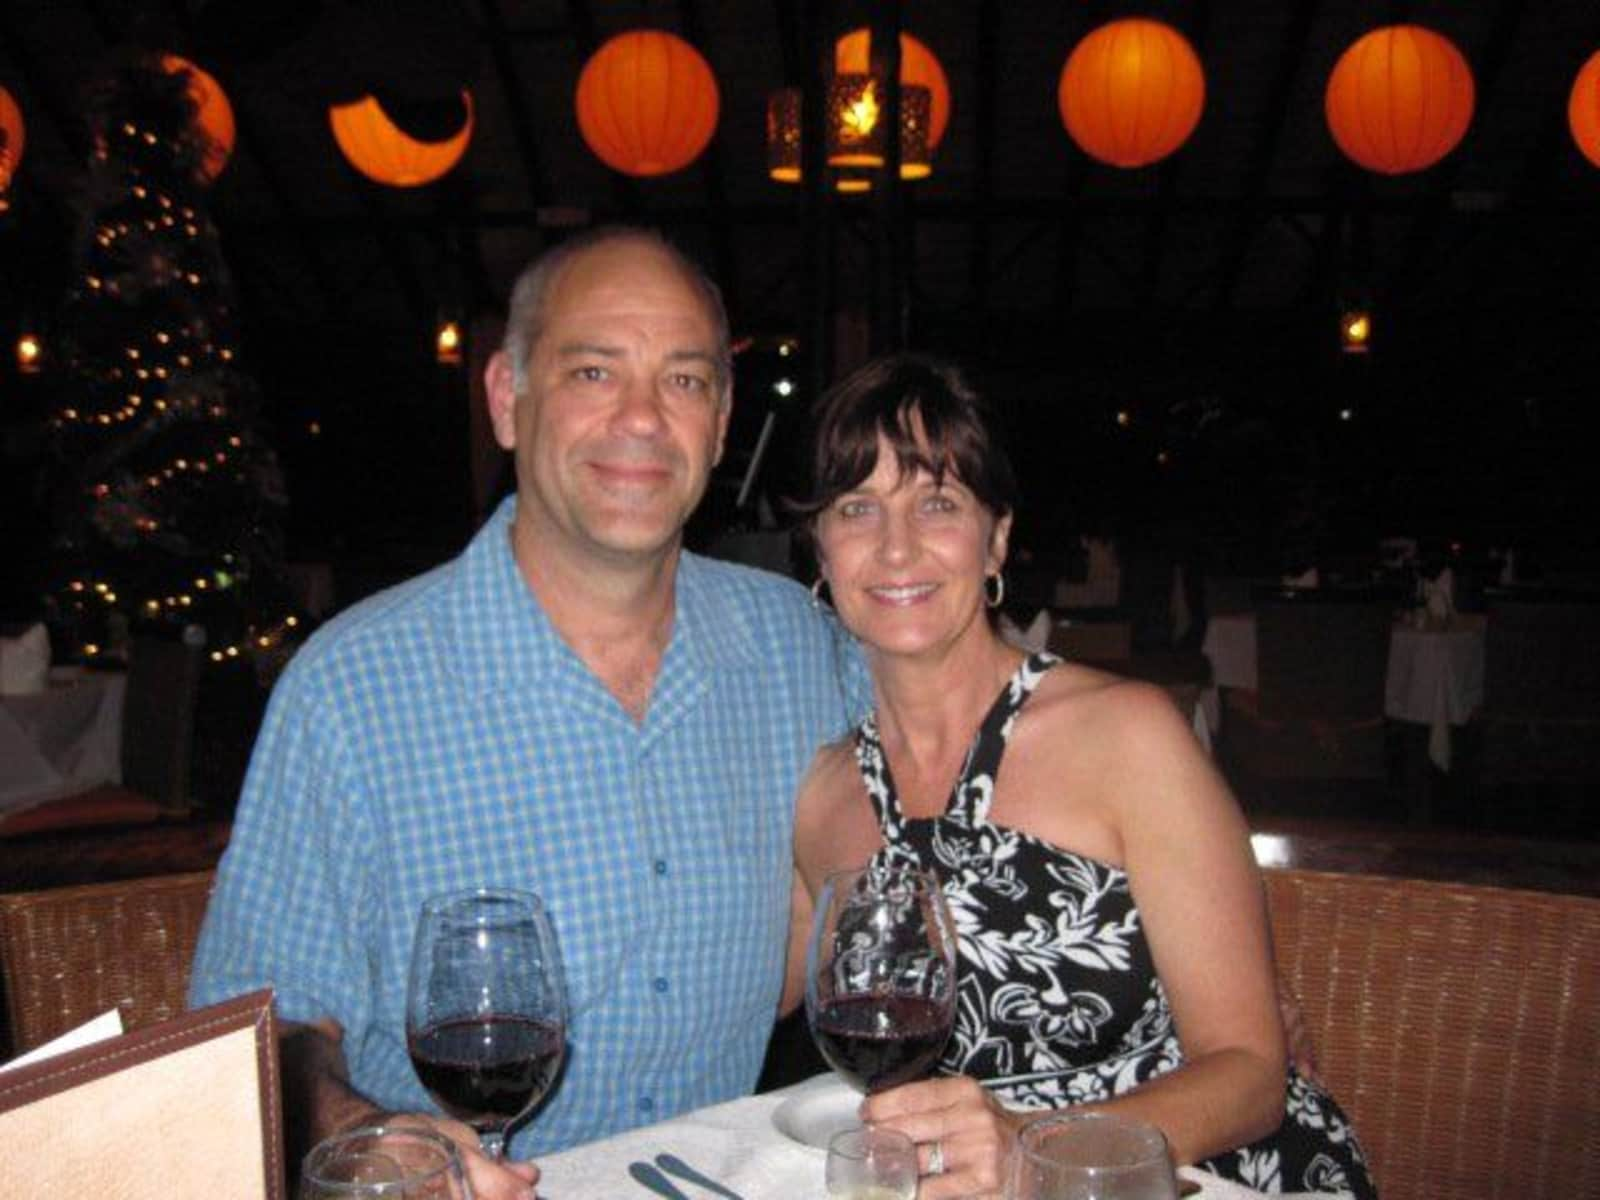 Jerry and jill & Jill from Conroe, Texas, United States